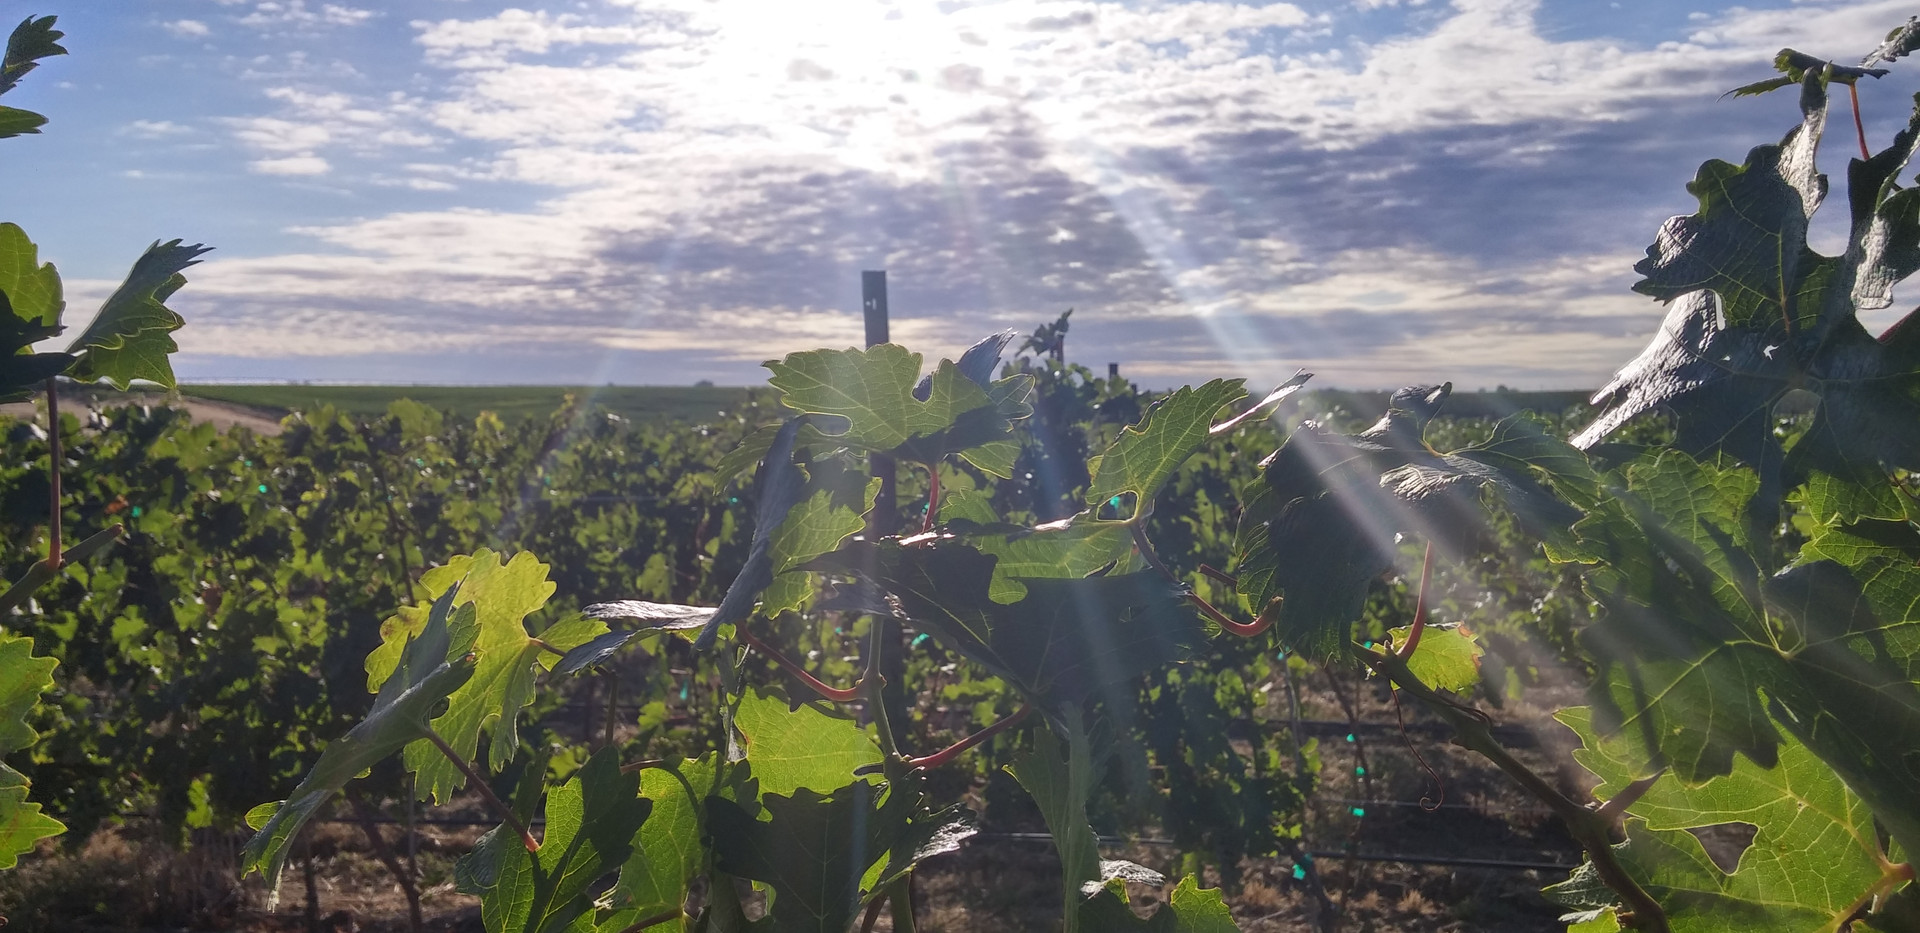 Sunlight in the Vineyard.jpg